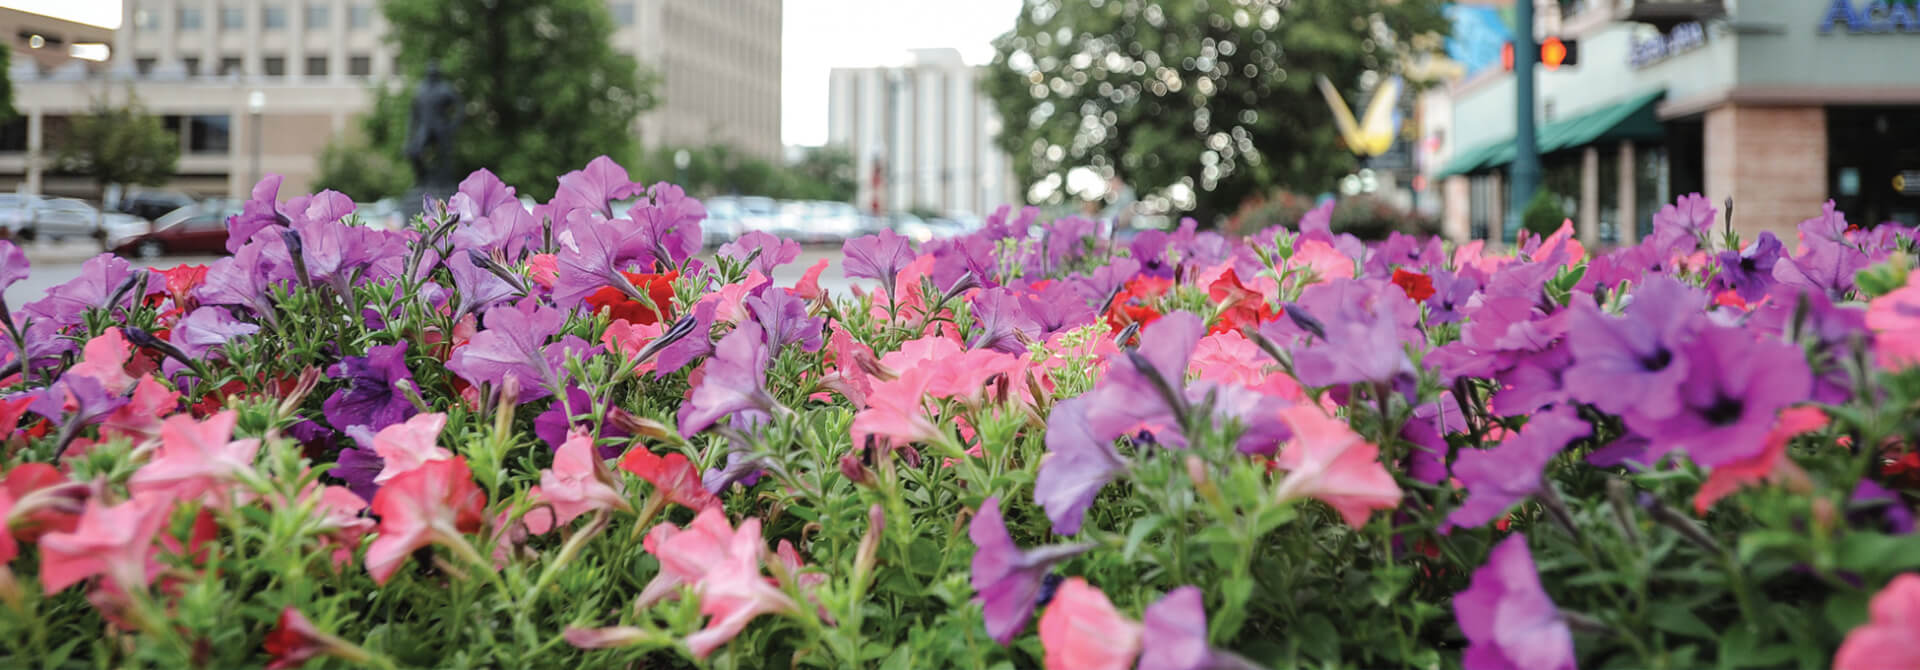 Downtown Header Flower Bed V2 Downtown Partnership Of Colorado Springs